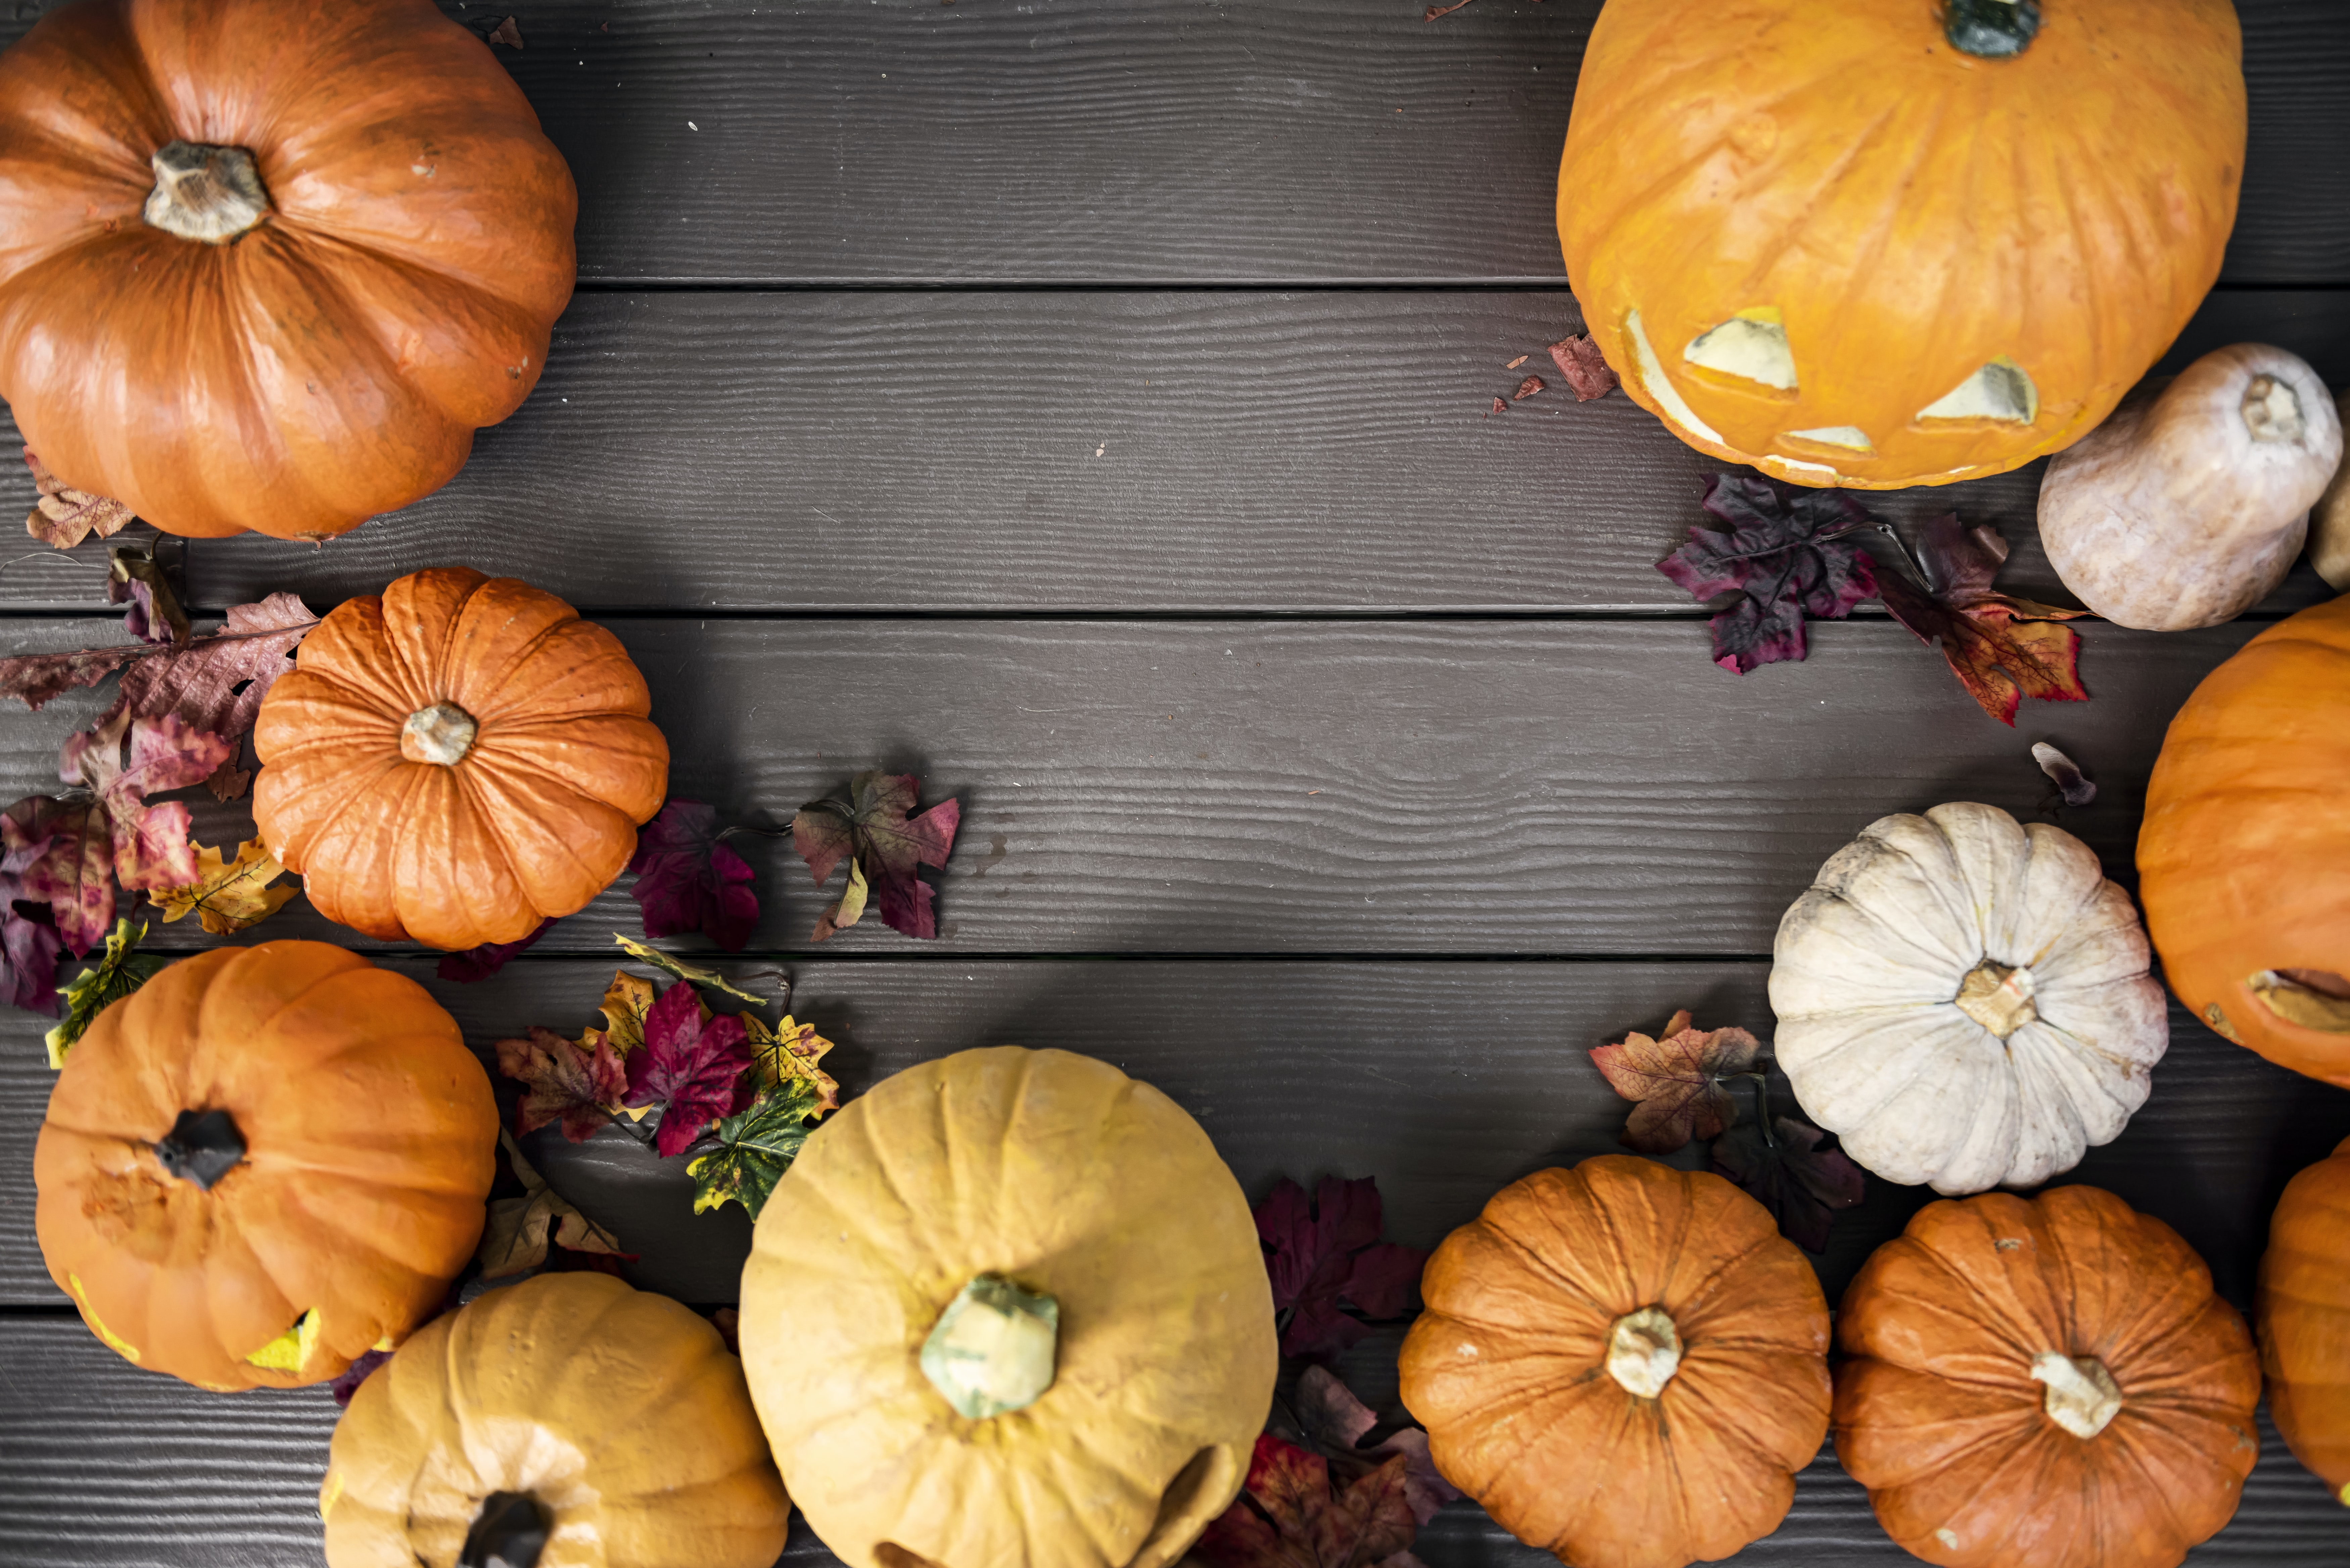 orange pumpkins surrounded by leaves on brown wooden surface